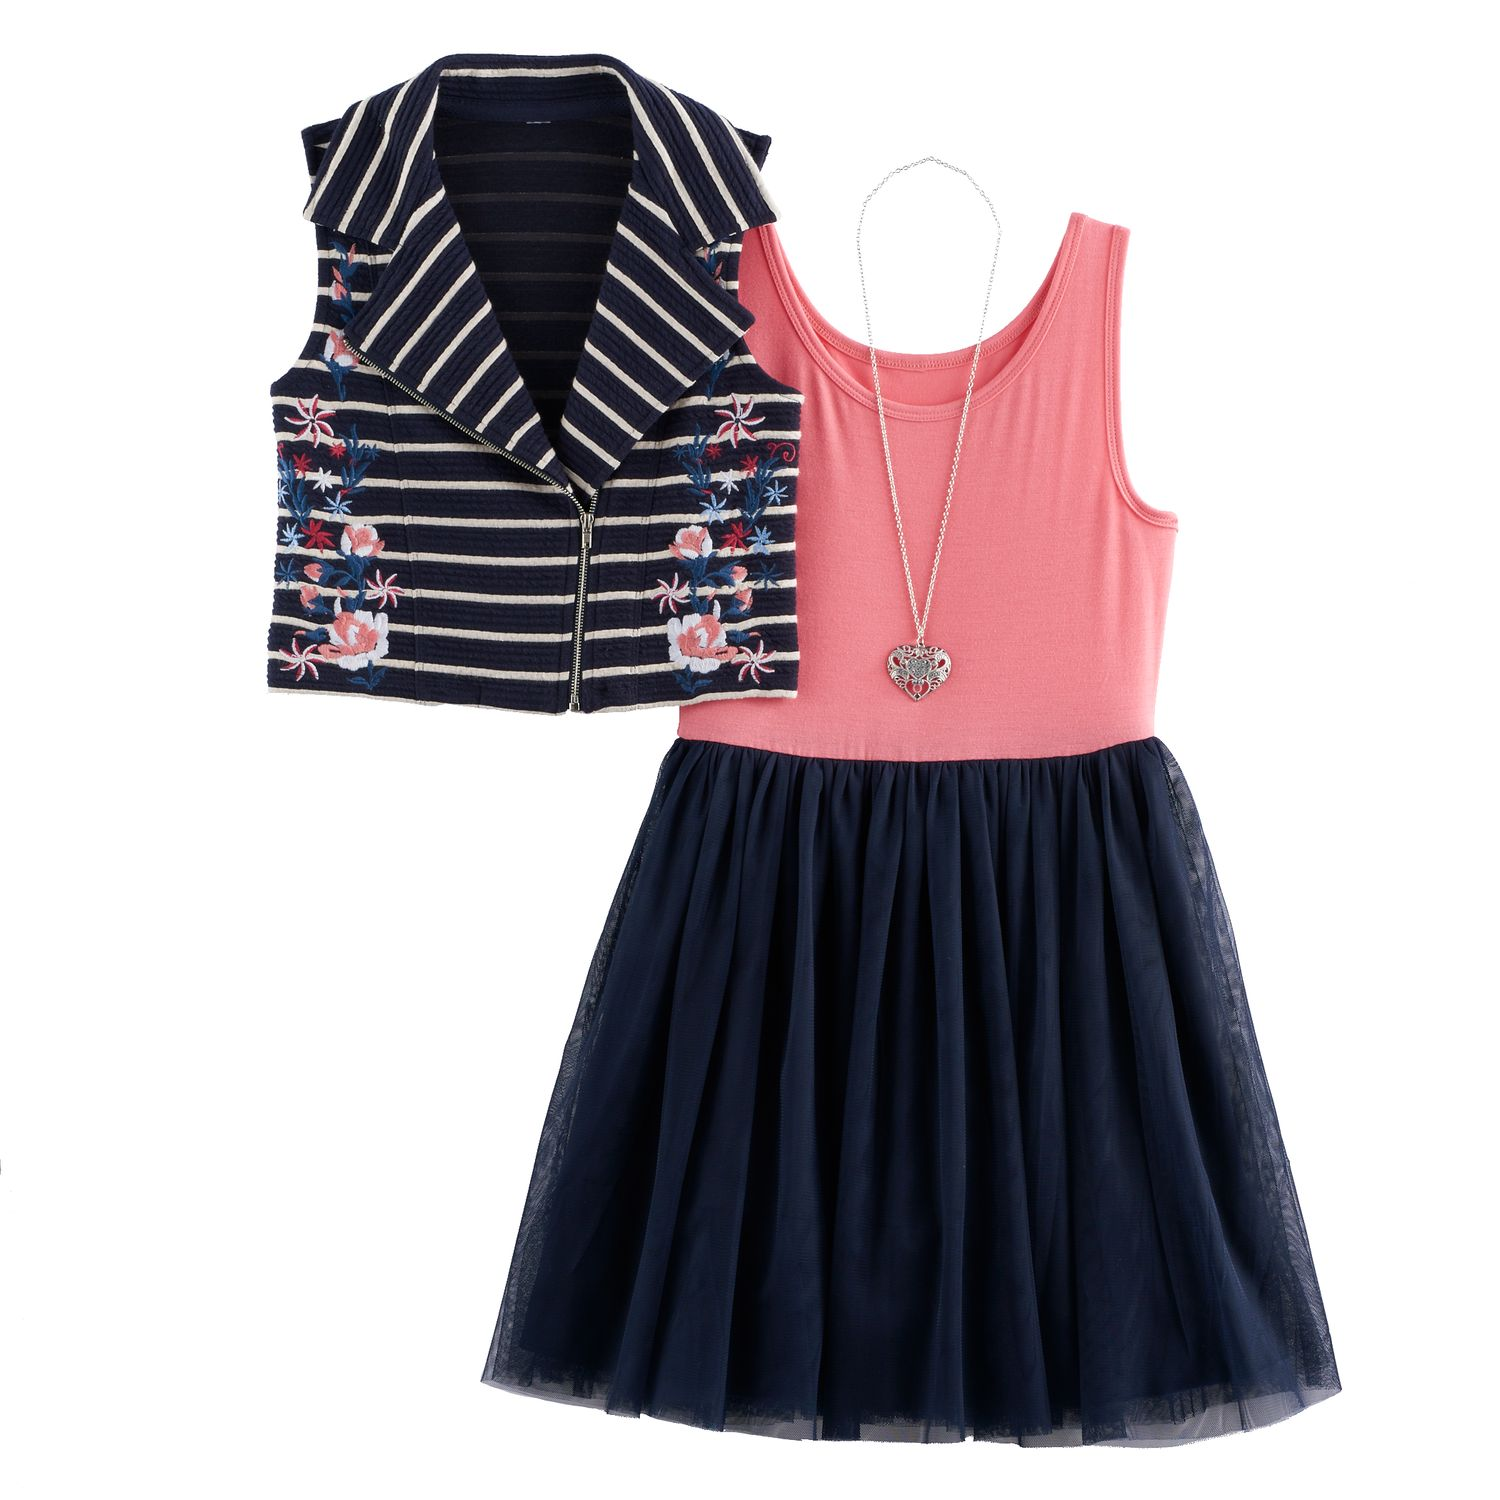 Girls Knitworks Kids Dresses Clothing